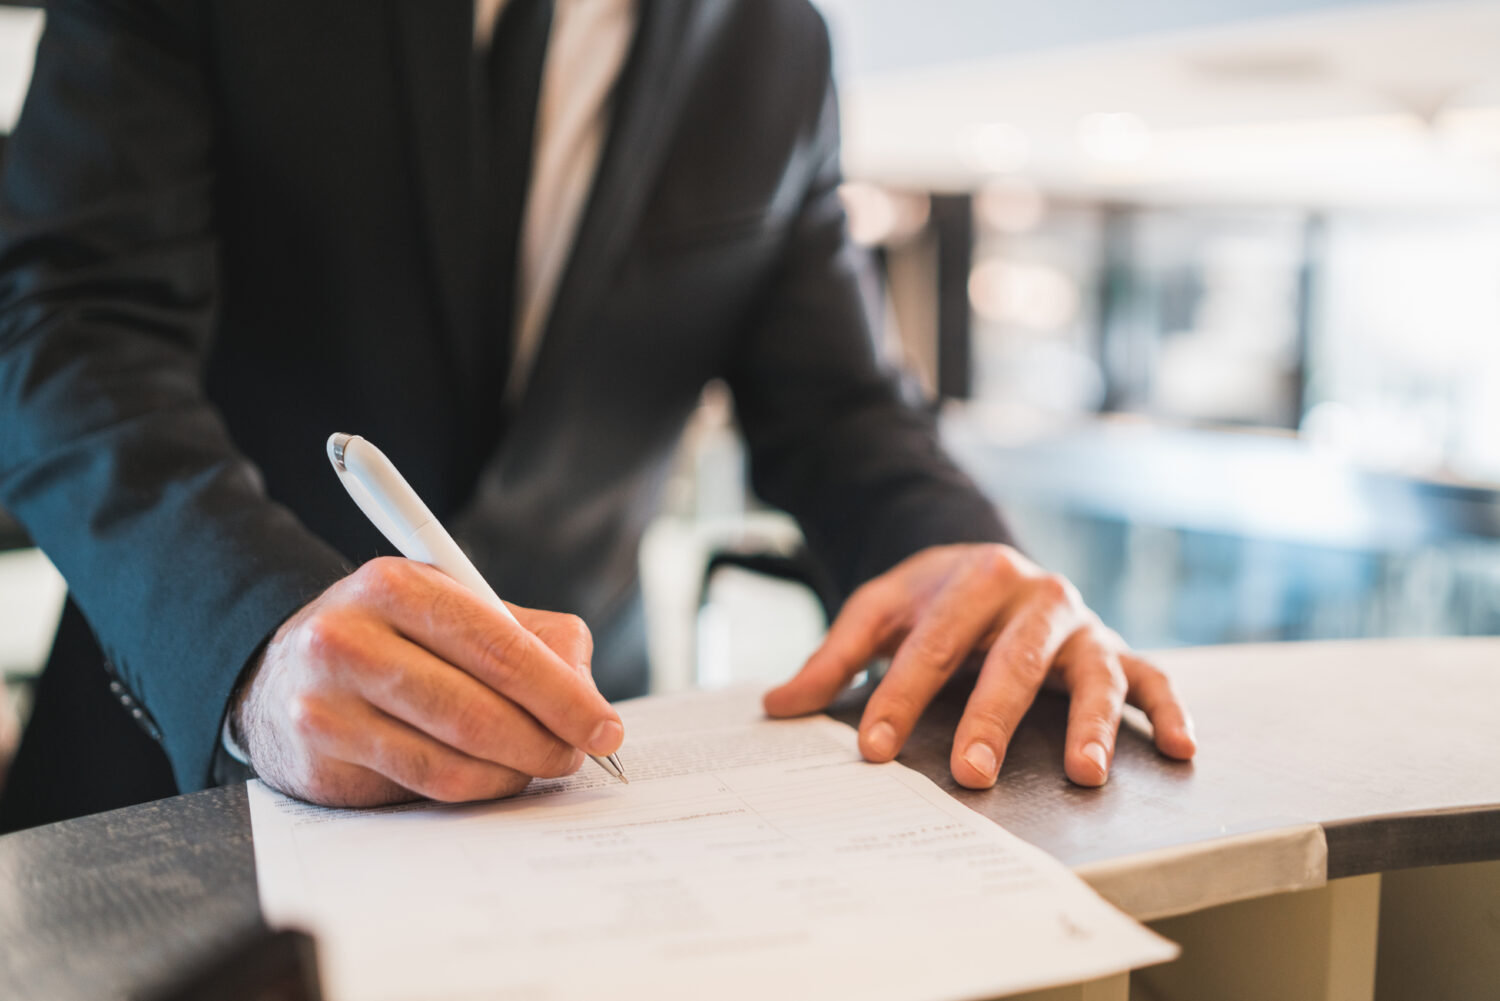 cropped image of businessman writing on papers at the front desk